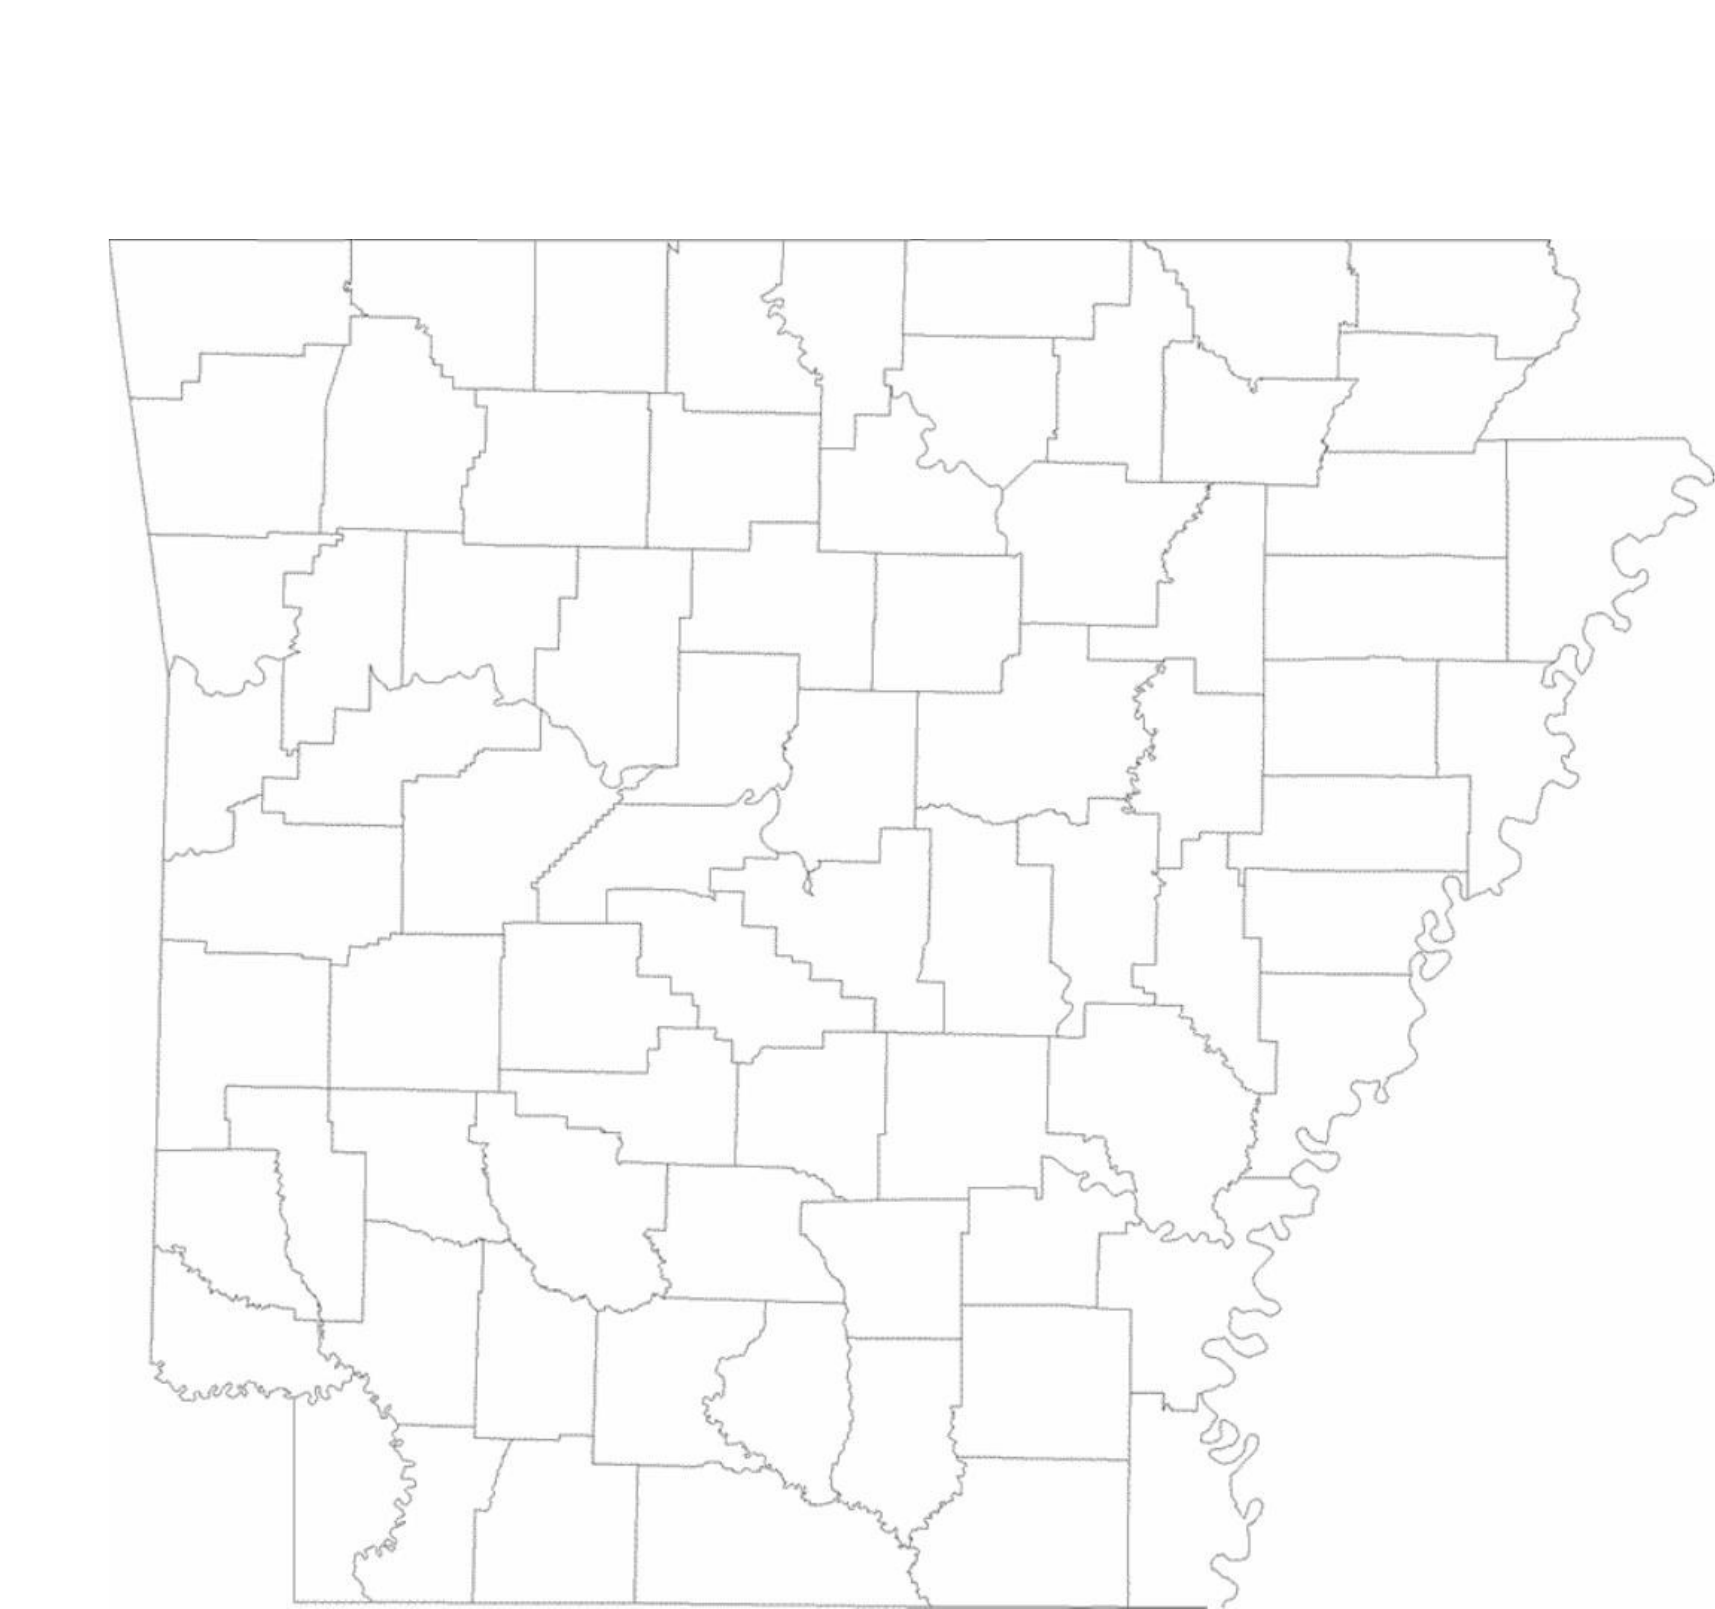 blank arkansas county map free download